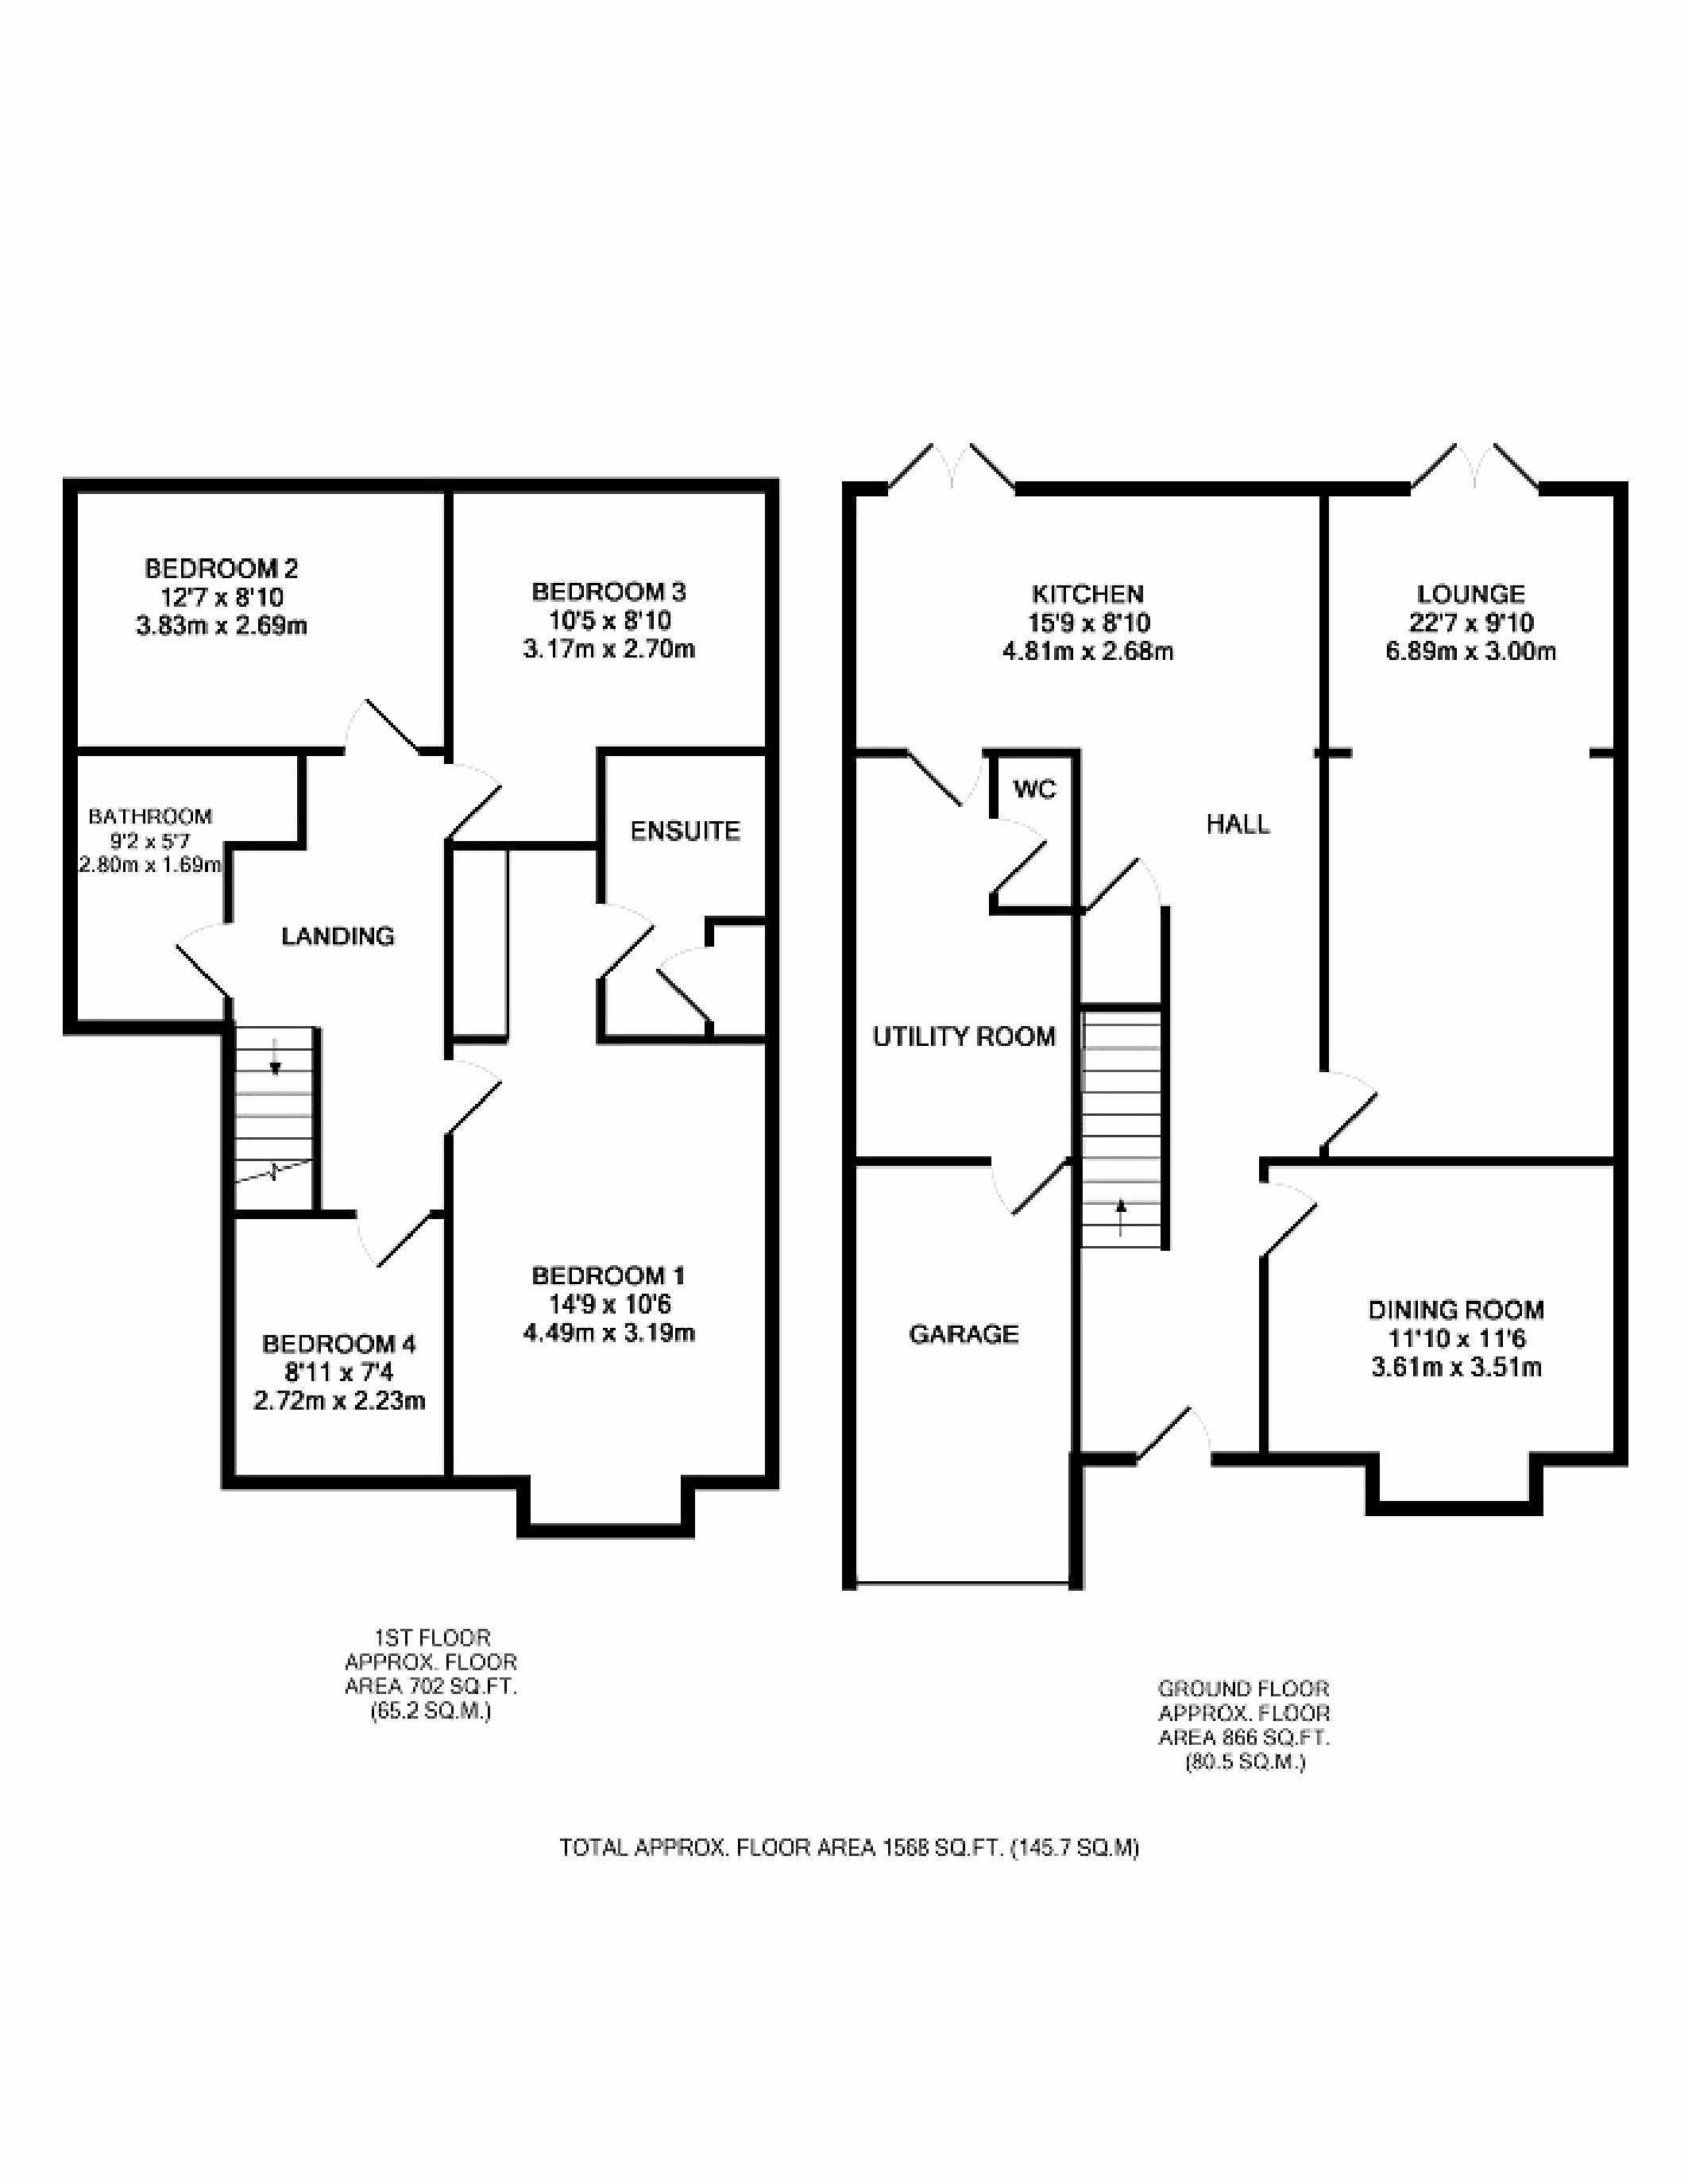 Haunted House Drawing Easy Awesome Haunted House Drawing Easy The 13th Floor Haunted House Floor Garage House Plans House Layout Plans Simple House Plans